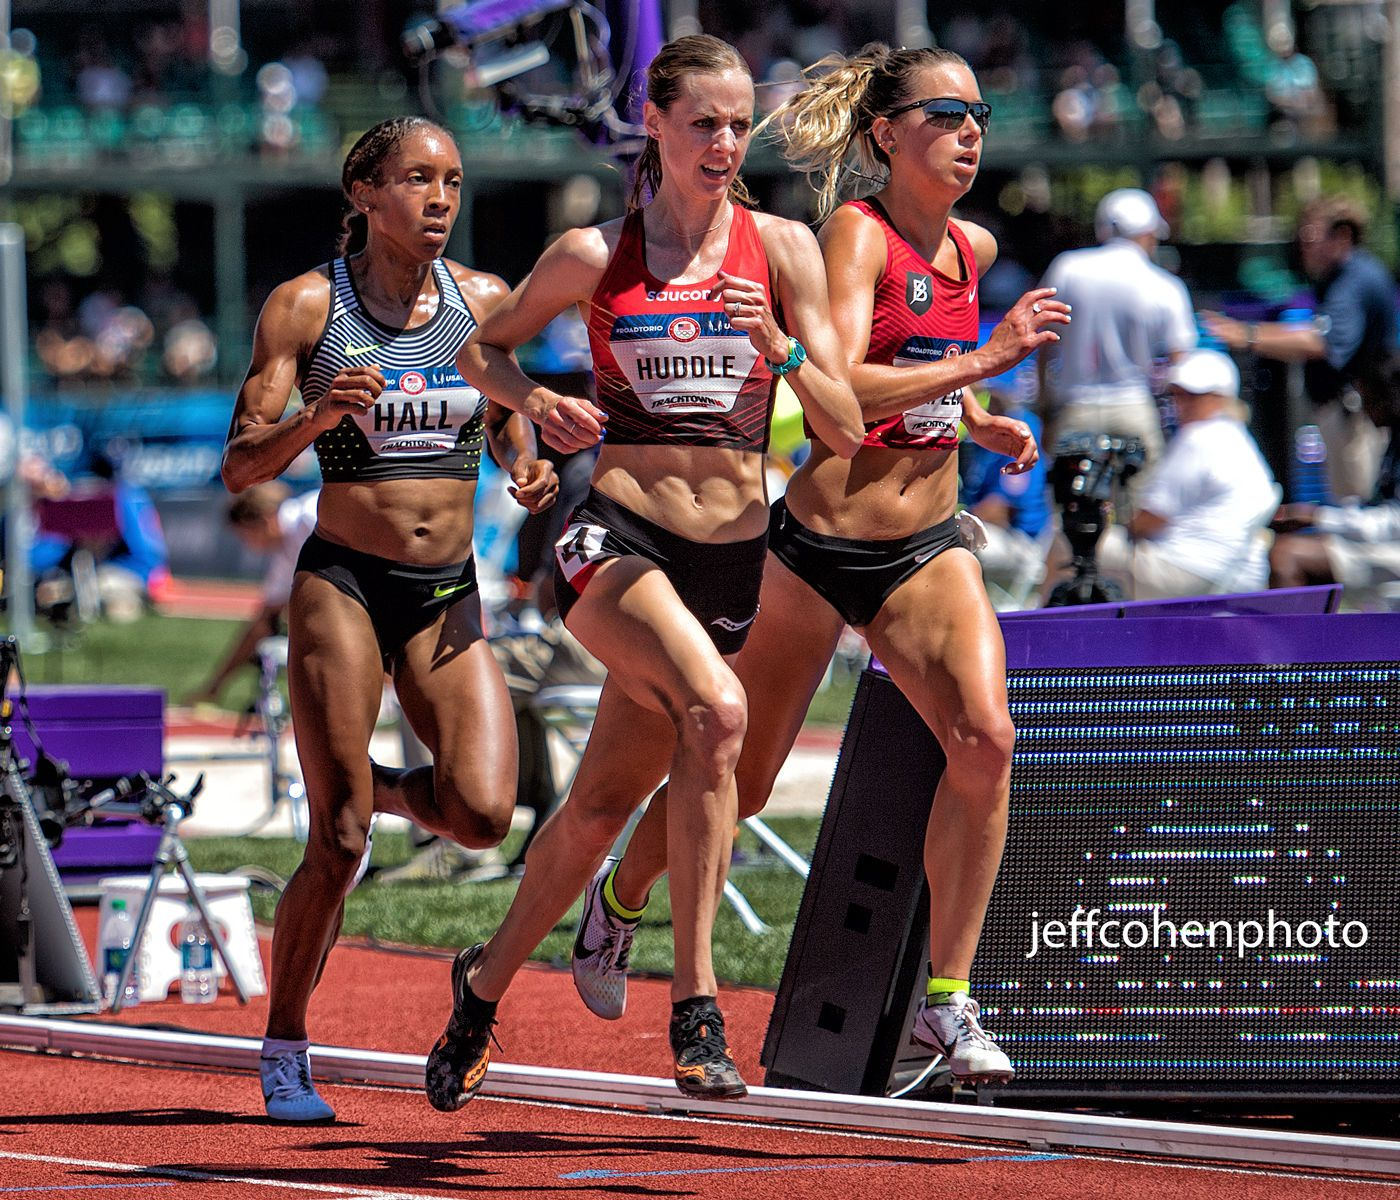 1r2016_oly_trials_day_2_huddle_10k_jeff_cohen_photo_5388web.jpg